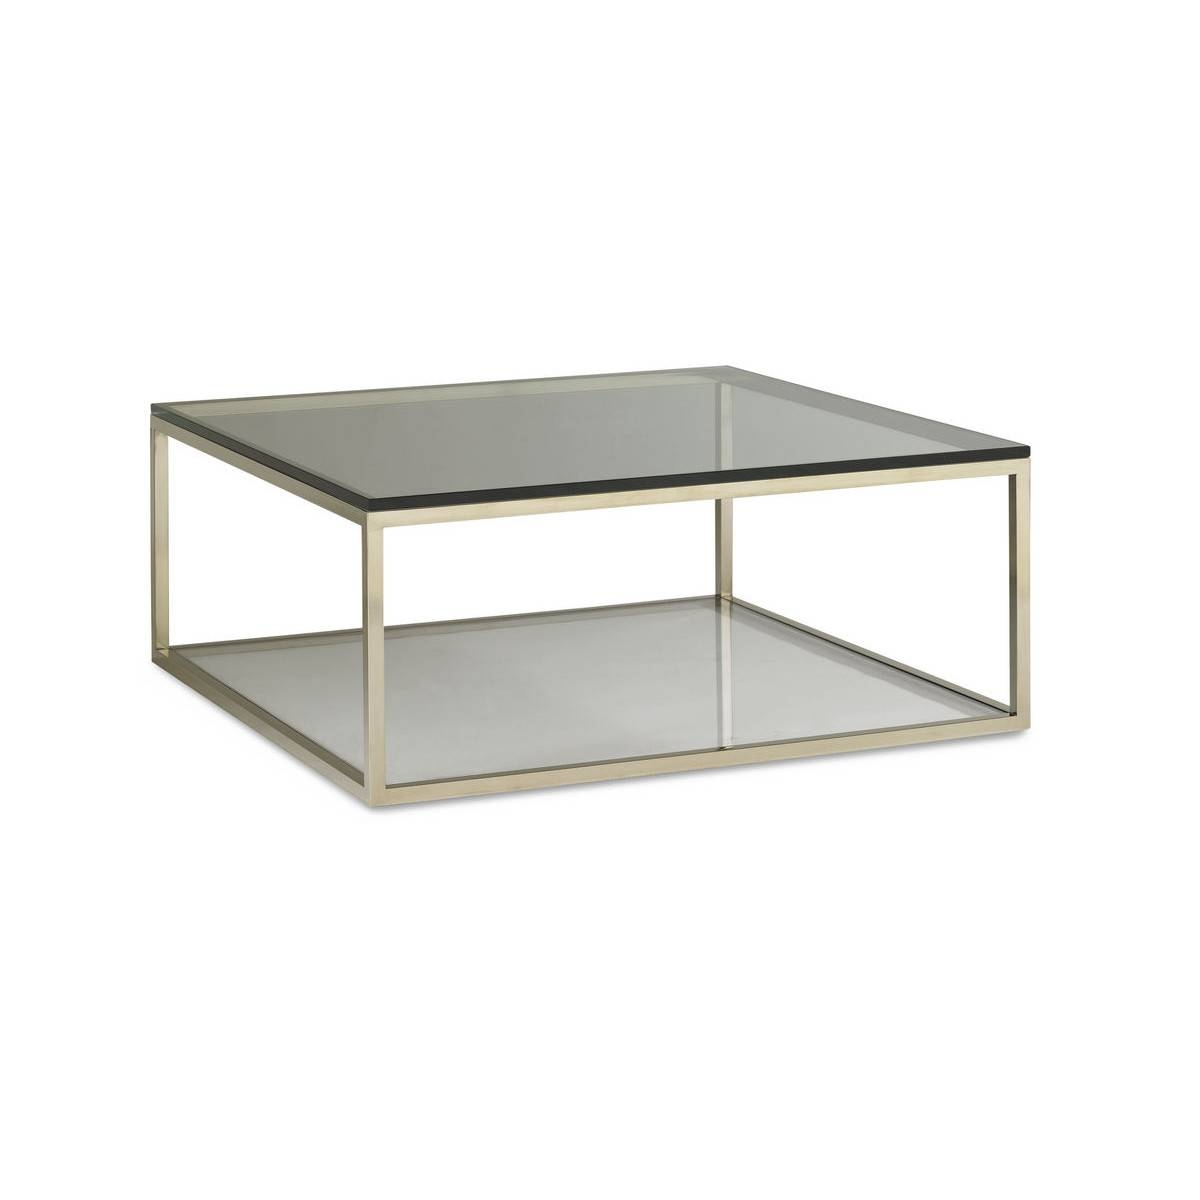 Square Glass Coffee Tables Neat Modern Coffee Table For Coffee intended for Square Glass Coffee Tables (Image 14 of 15)